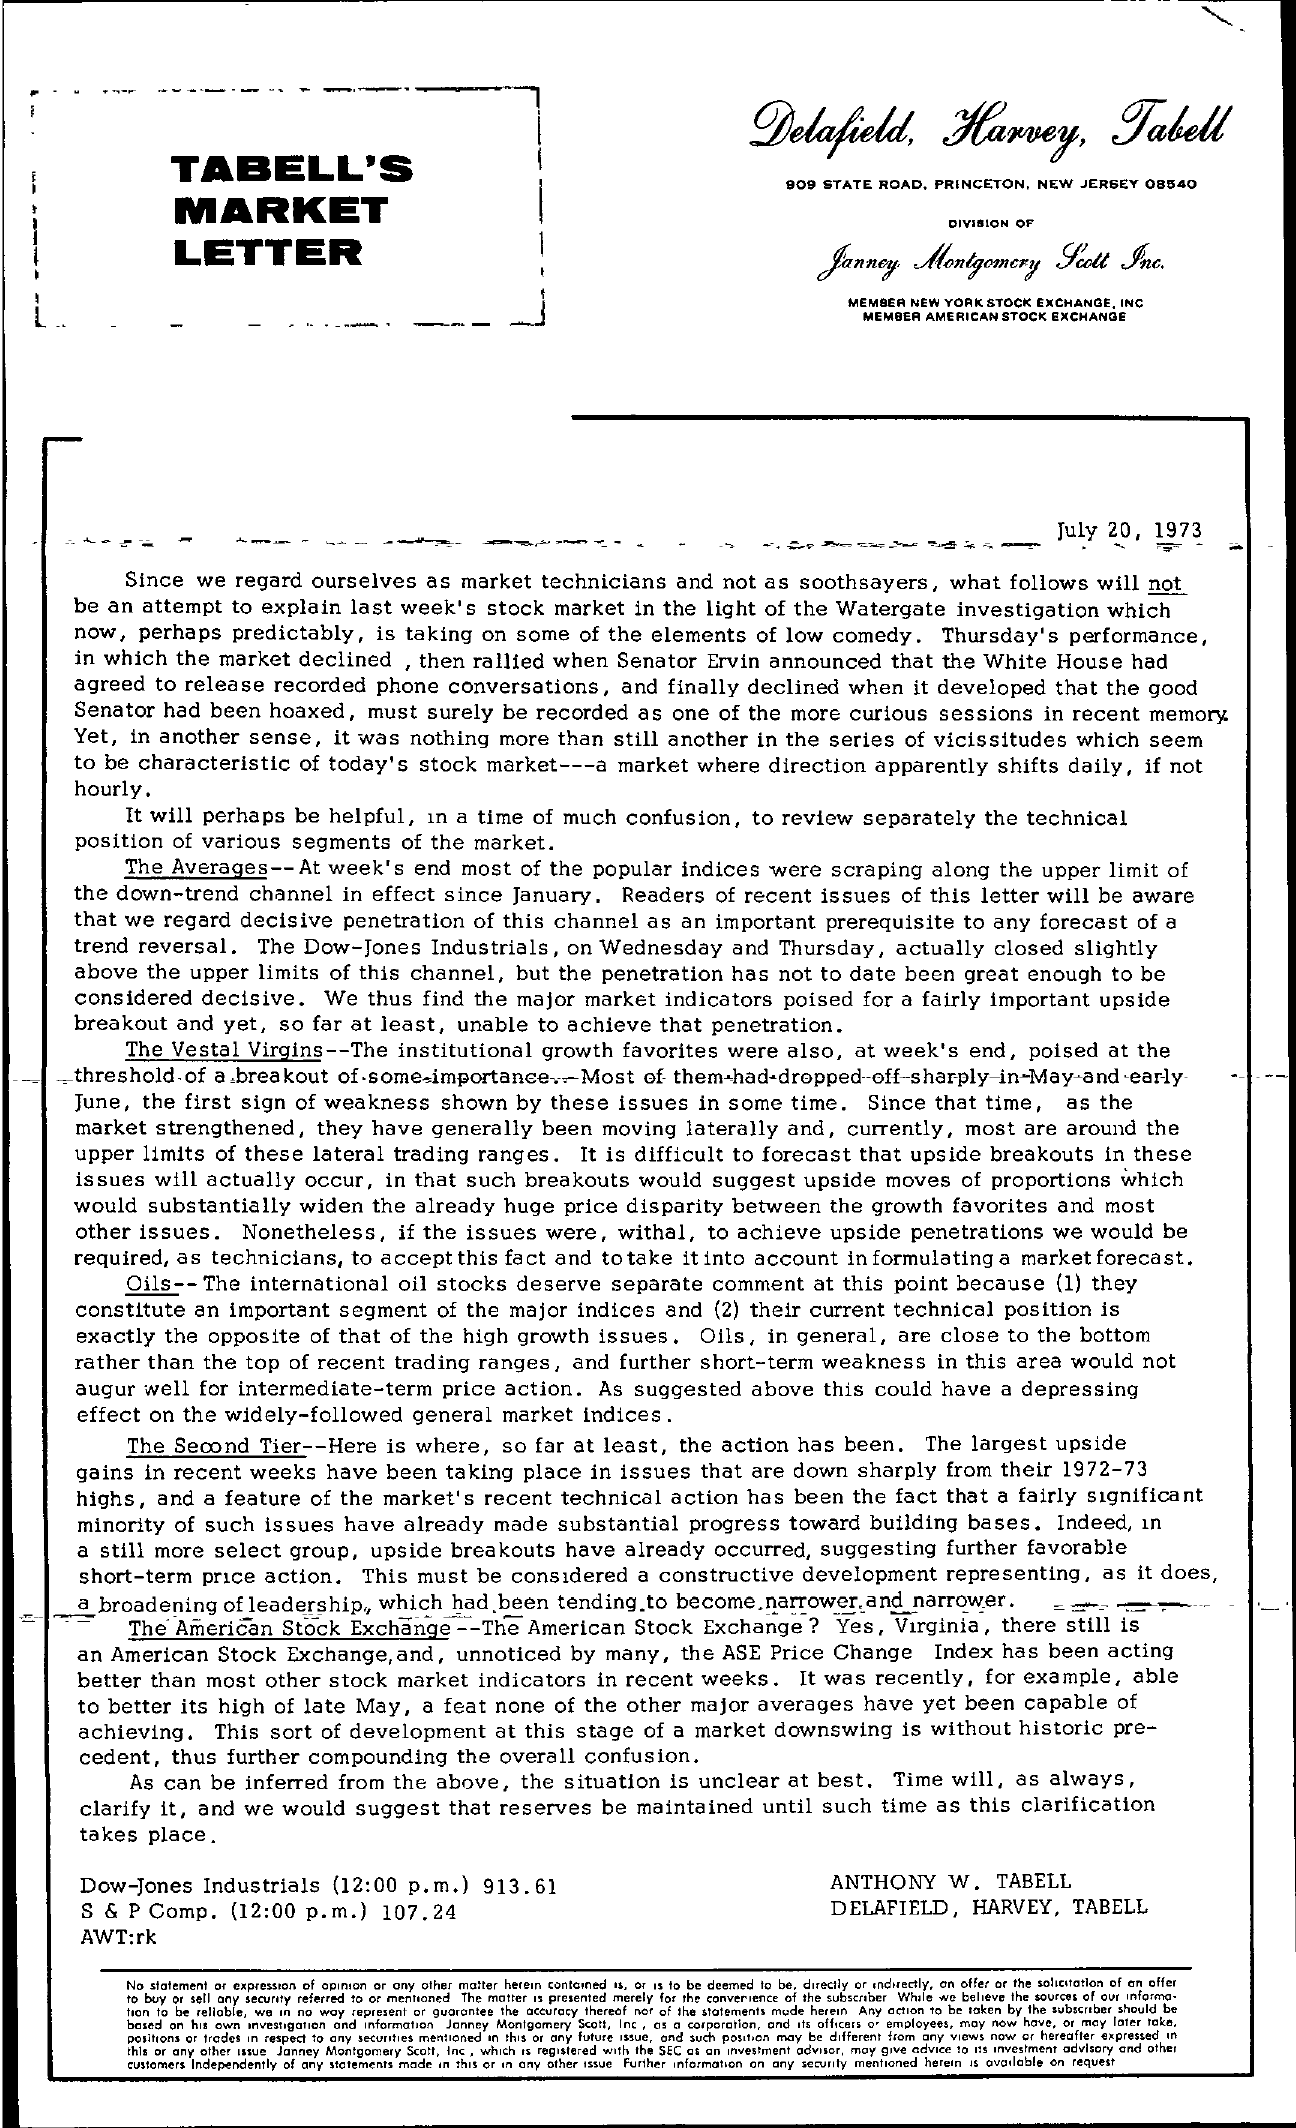 Tabell's Market Letter - July 20, 1973